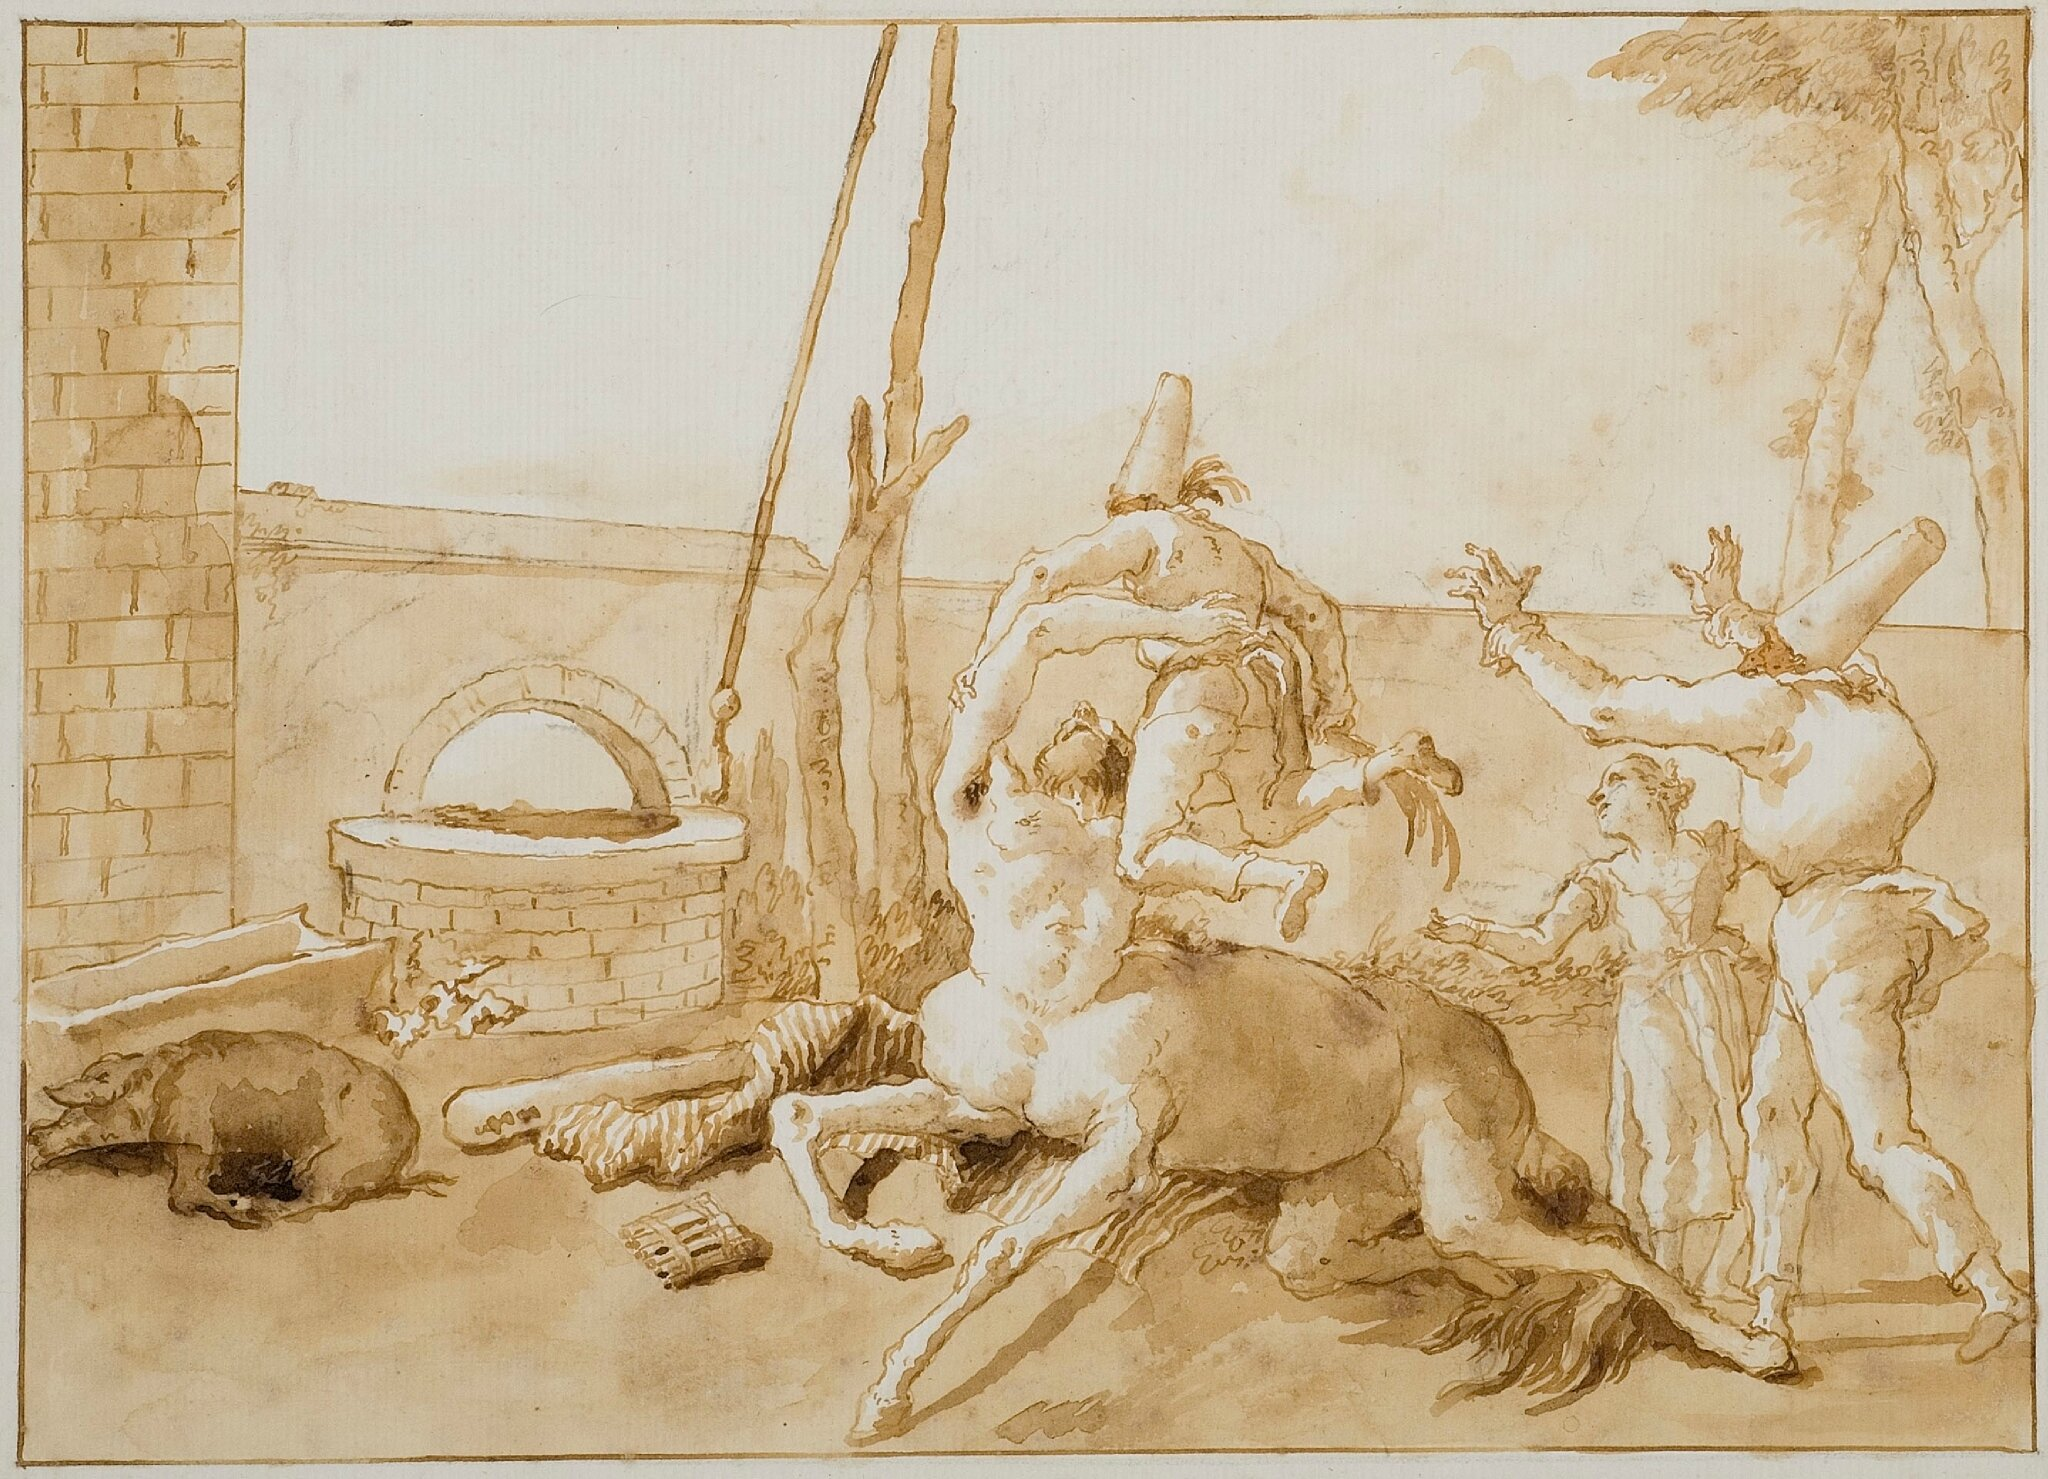 Crocker Art Museum shows drawings by exceptional 18th-century Venetian masters Giambattista and Domenico Tiepolo